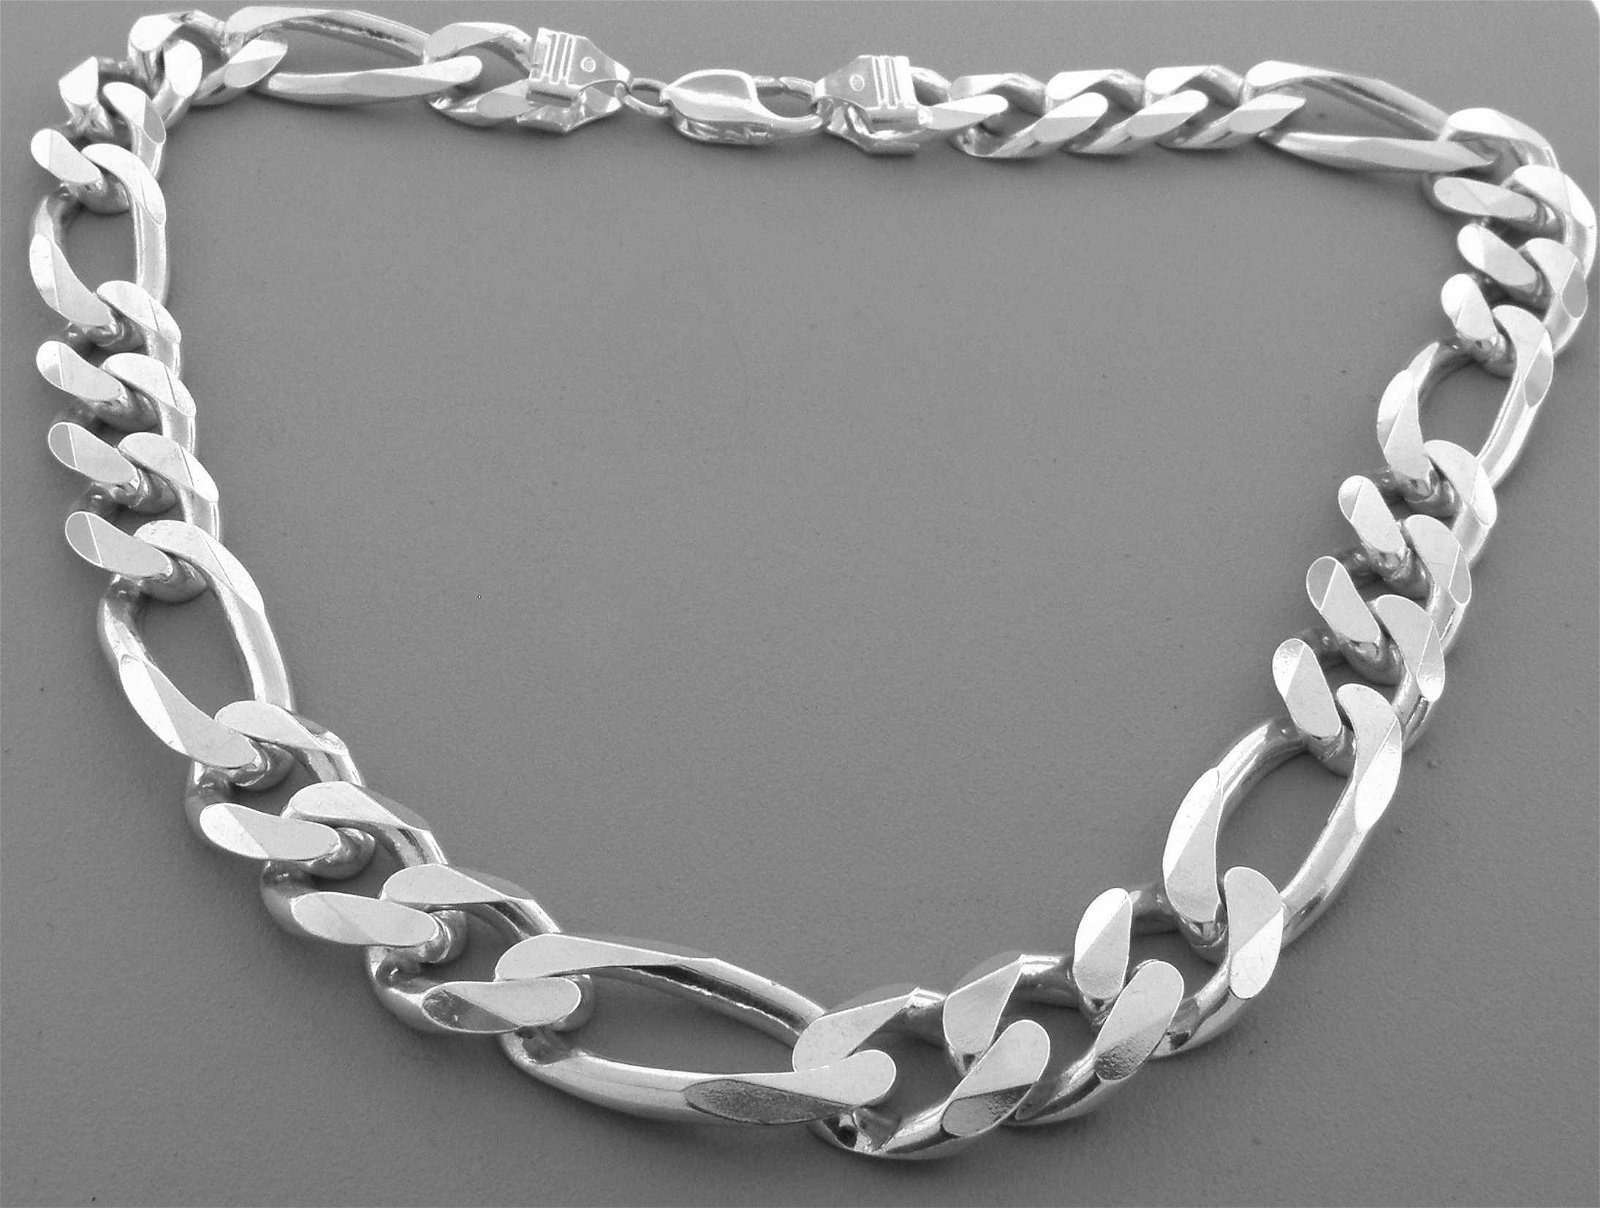 STERLING SILVER FIGARO HEAVY SOLID NECKLACE 13mm - 22""